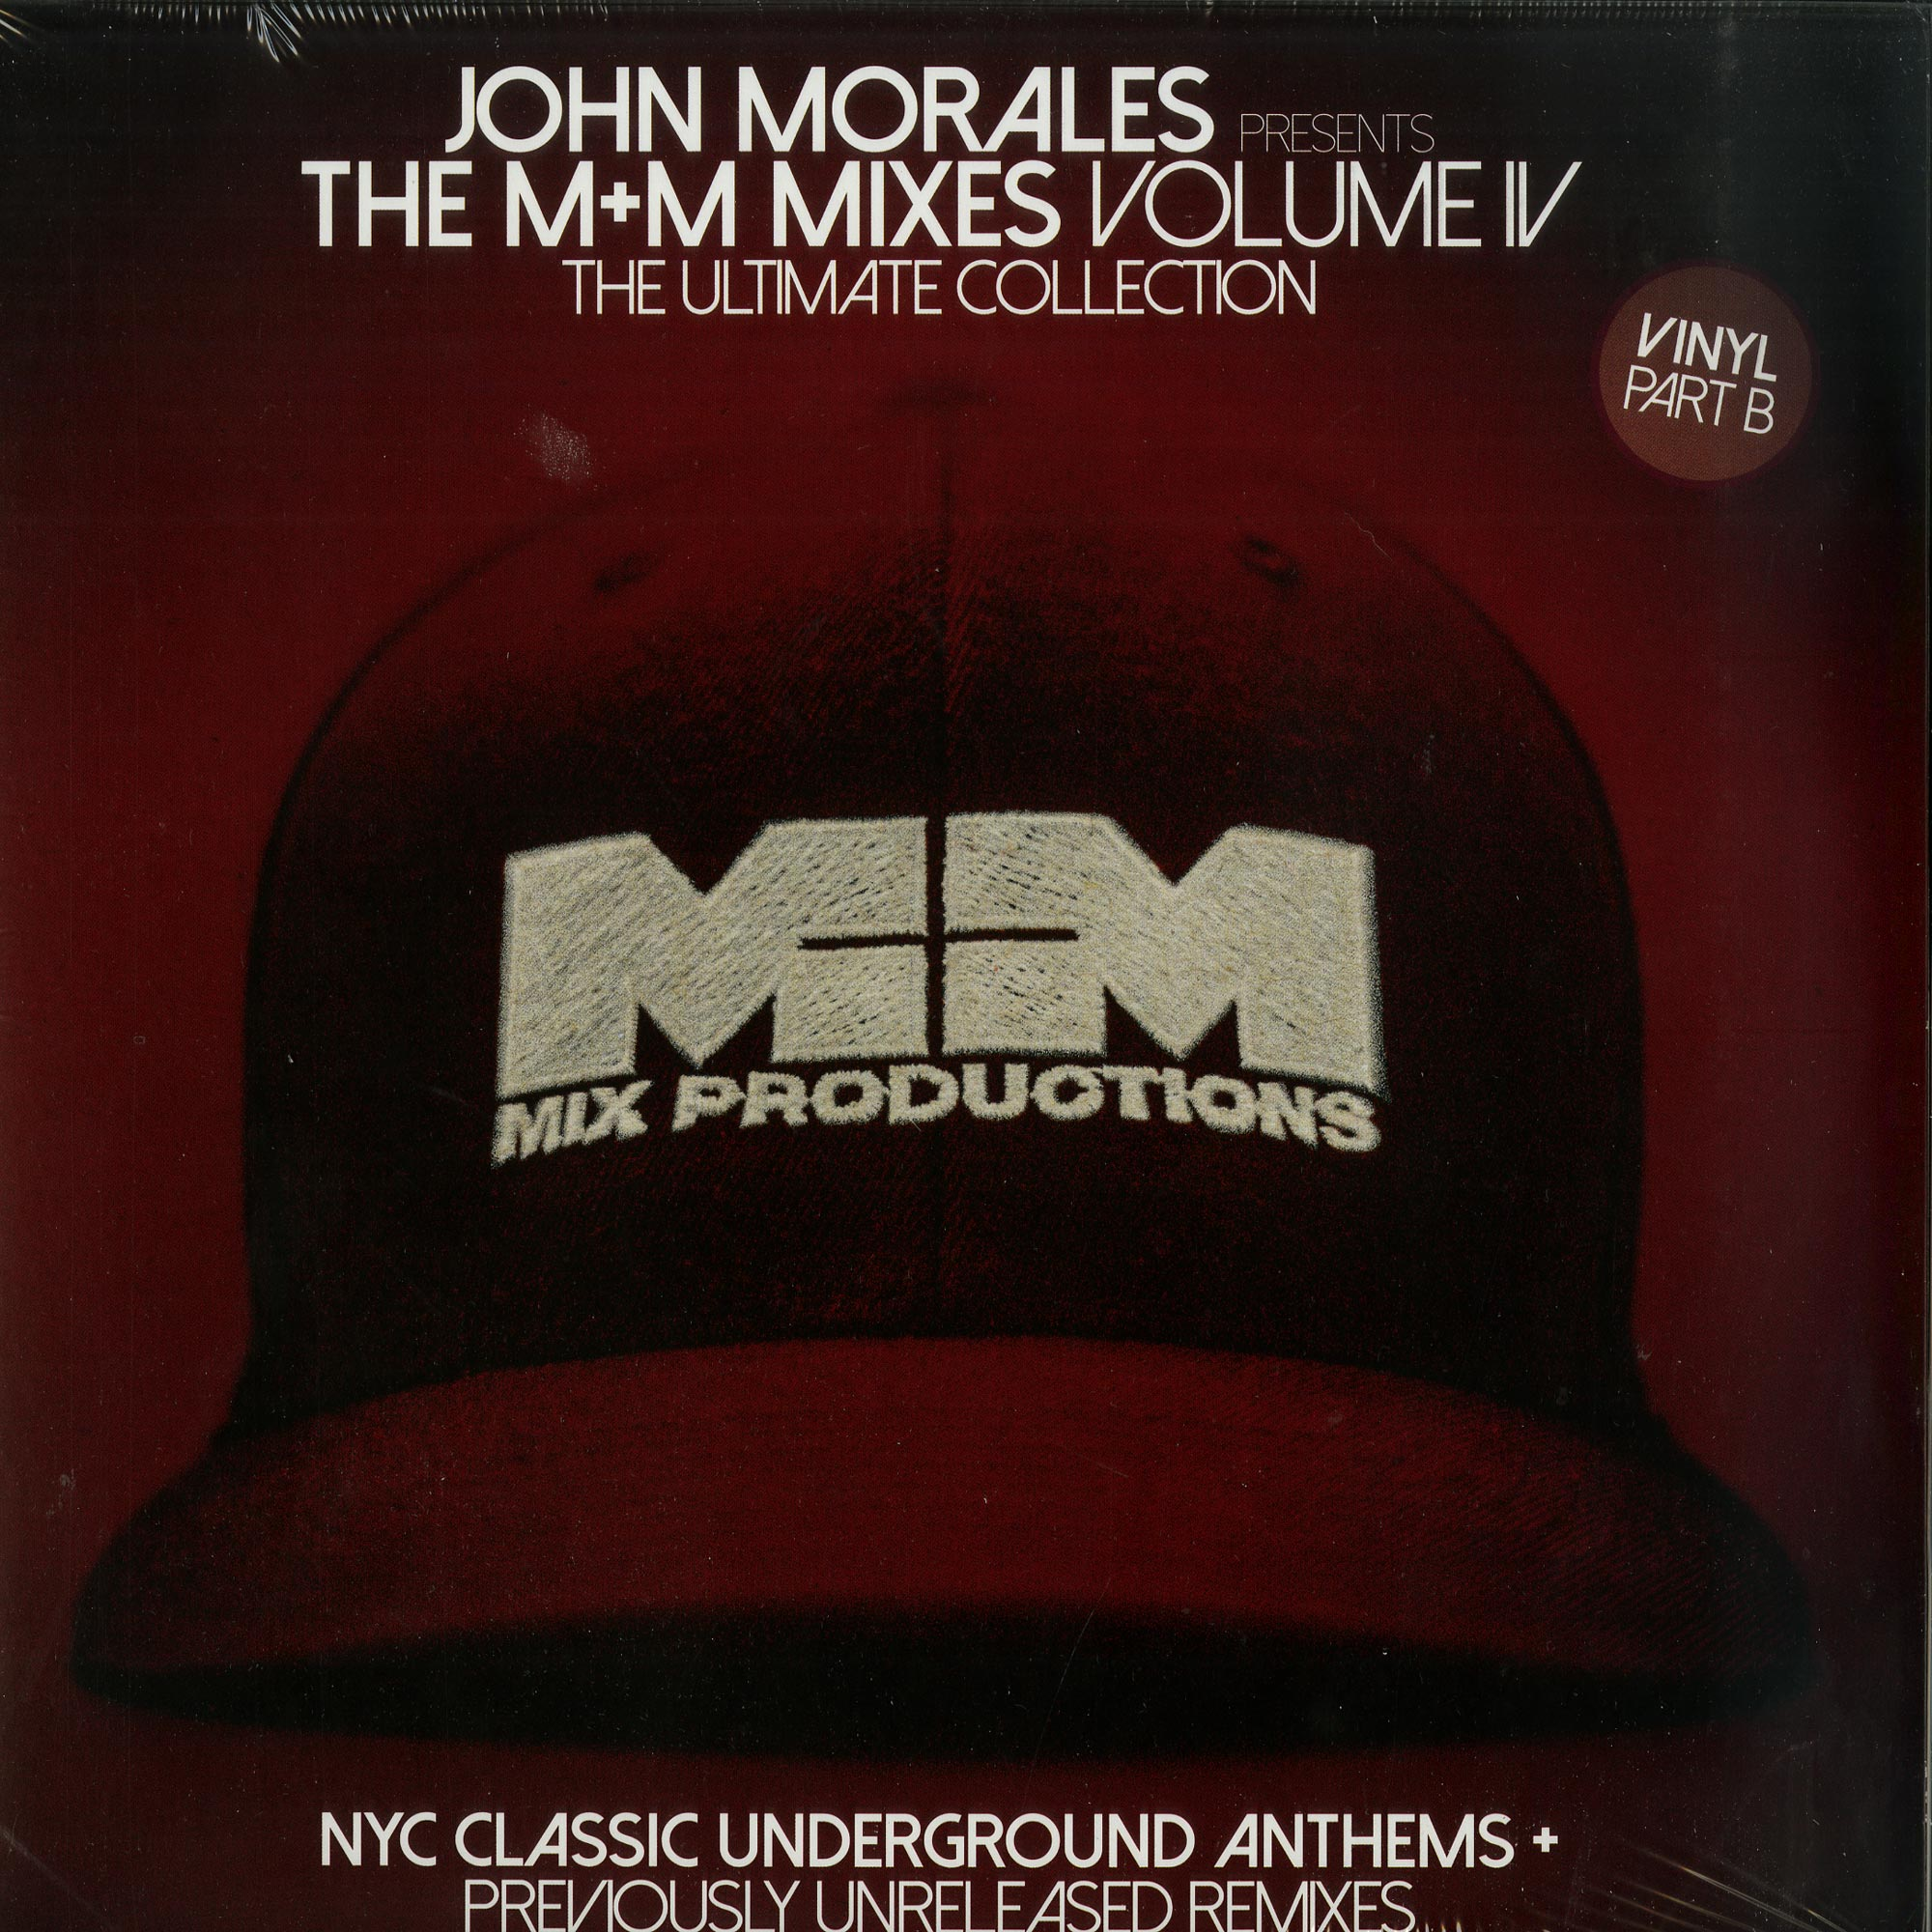 Various Artists - JOHN MORALES PRESENTS THE M+M MIXES VOL. 4 PART 2